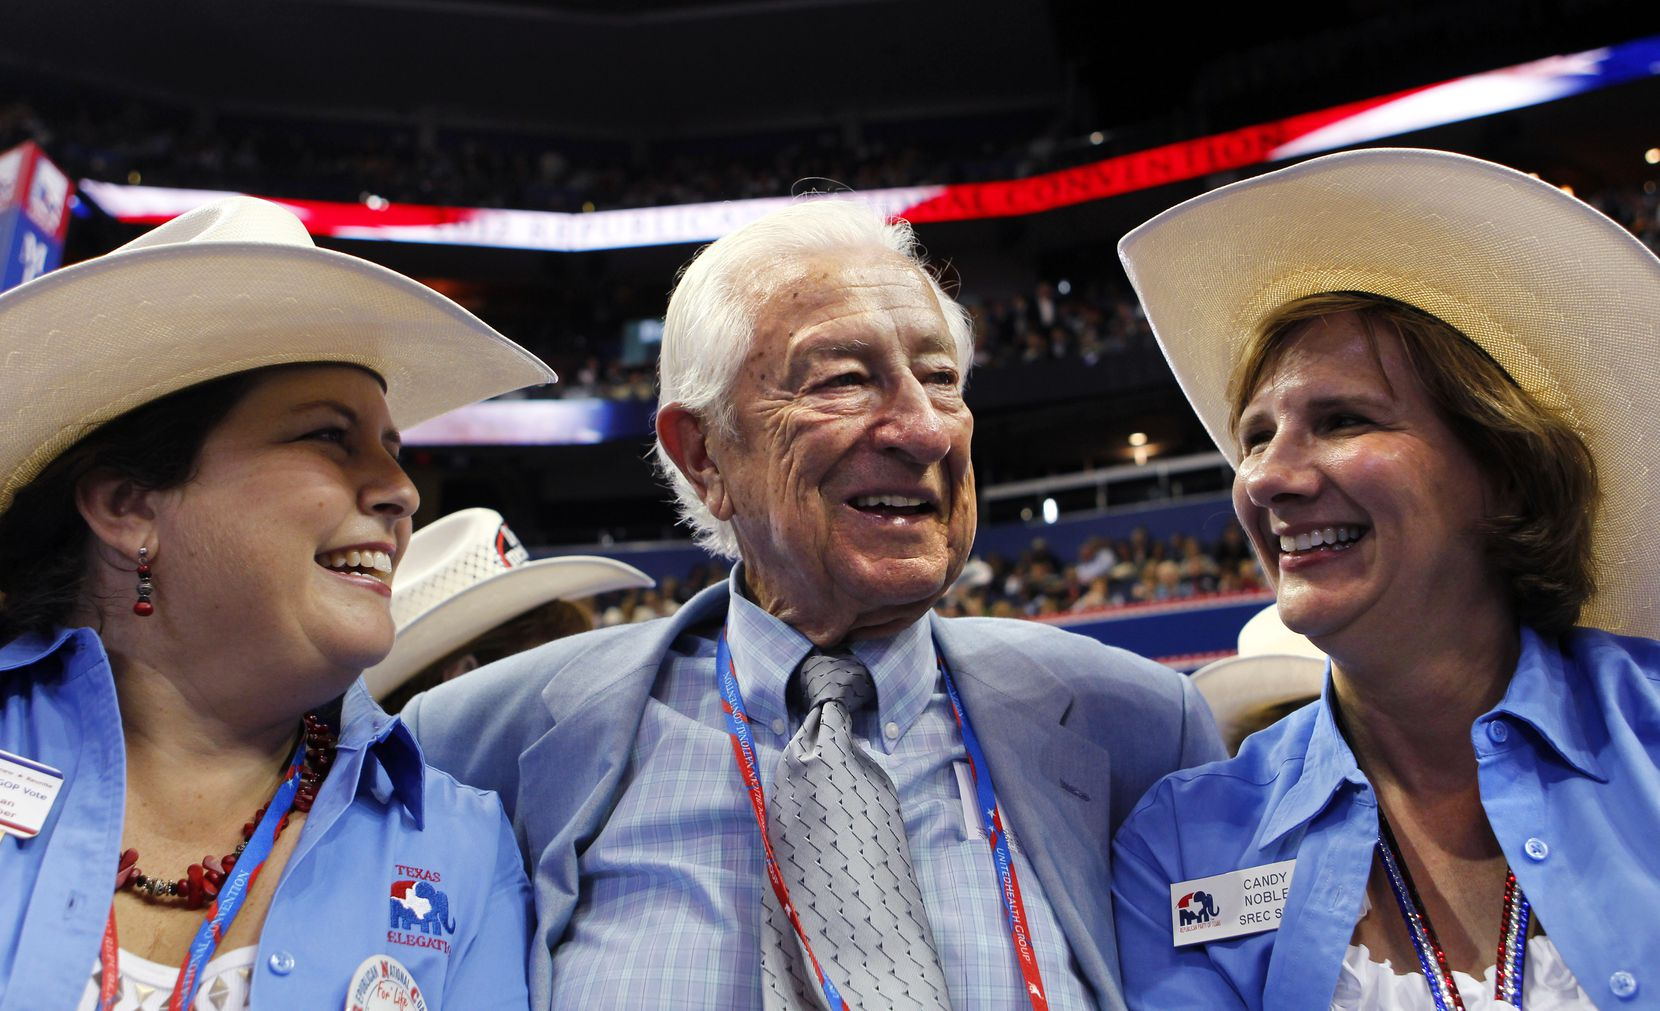 (l-r) Susan Fletcher of Frisco, Rep. Ralph Hall and Candy Noble of Plano at the Republican National Convention in Tampa, Fla., on Aug. 29, 2012.